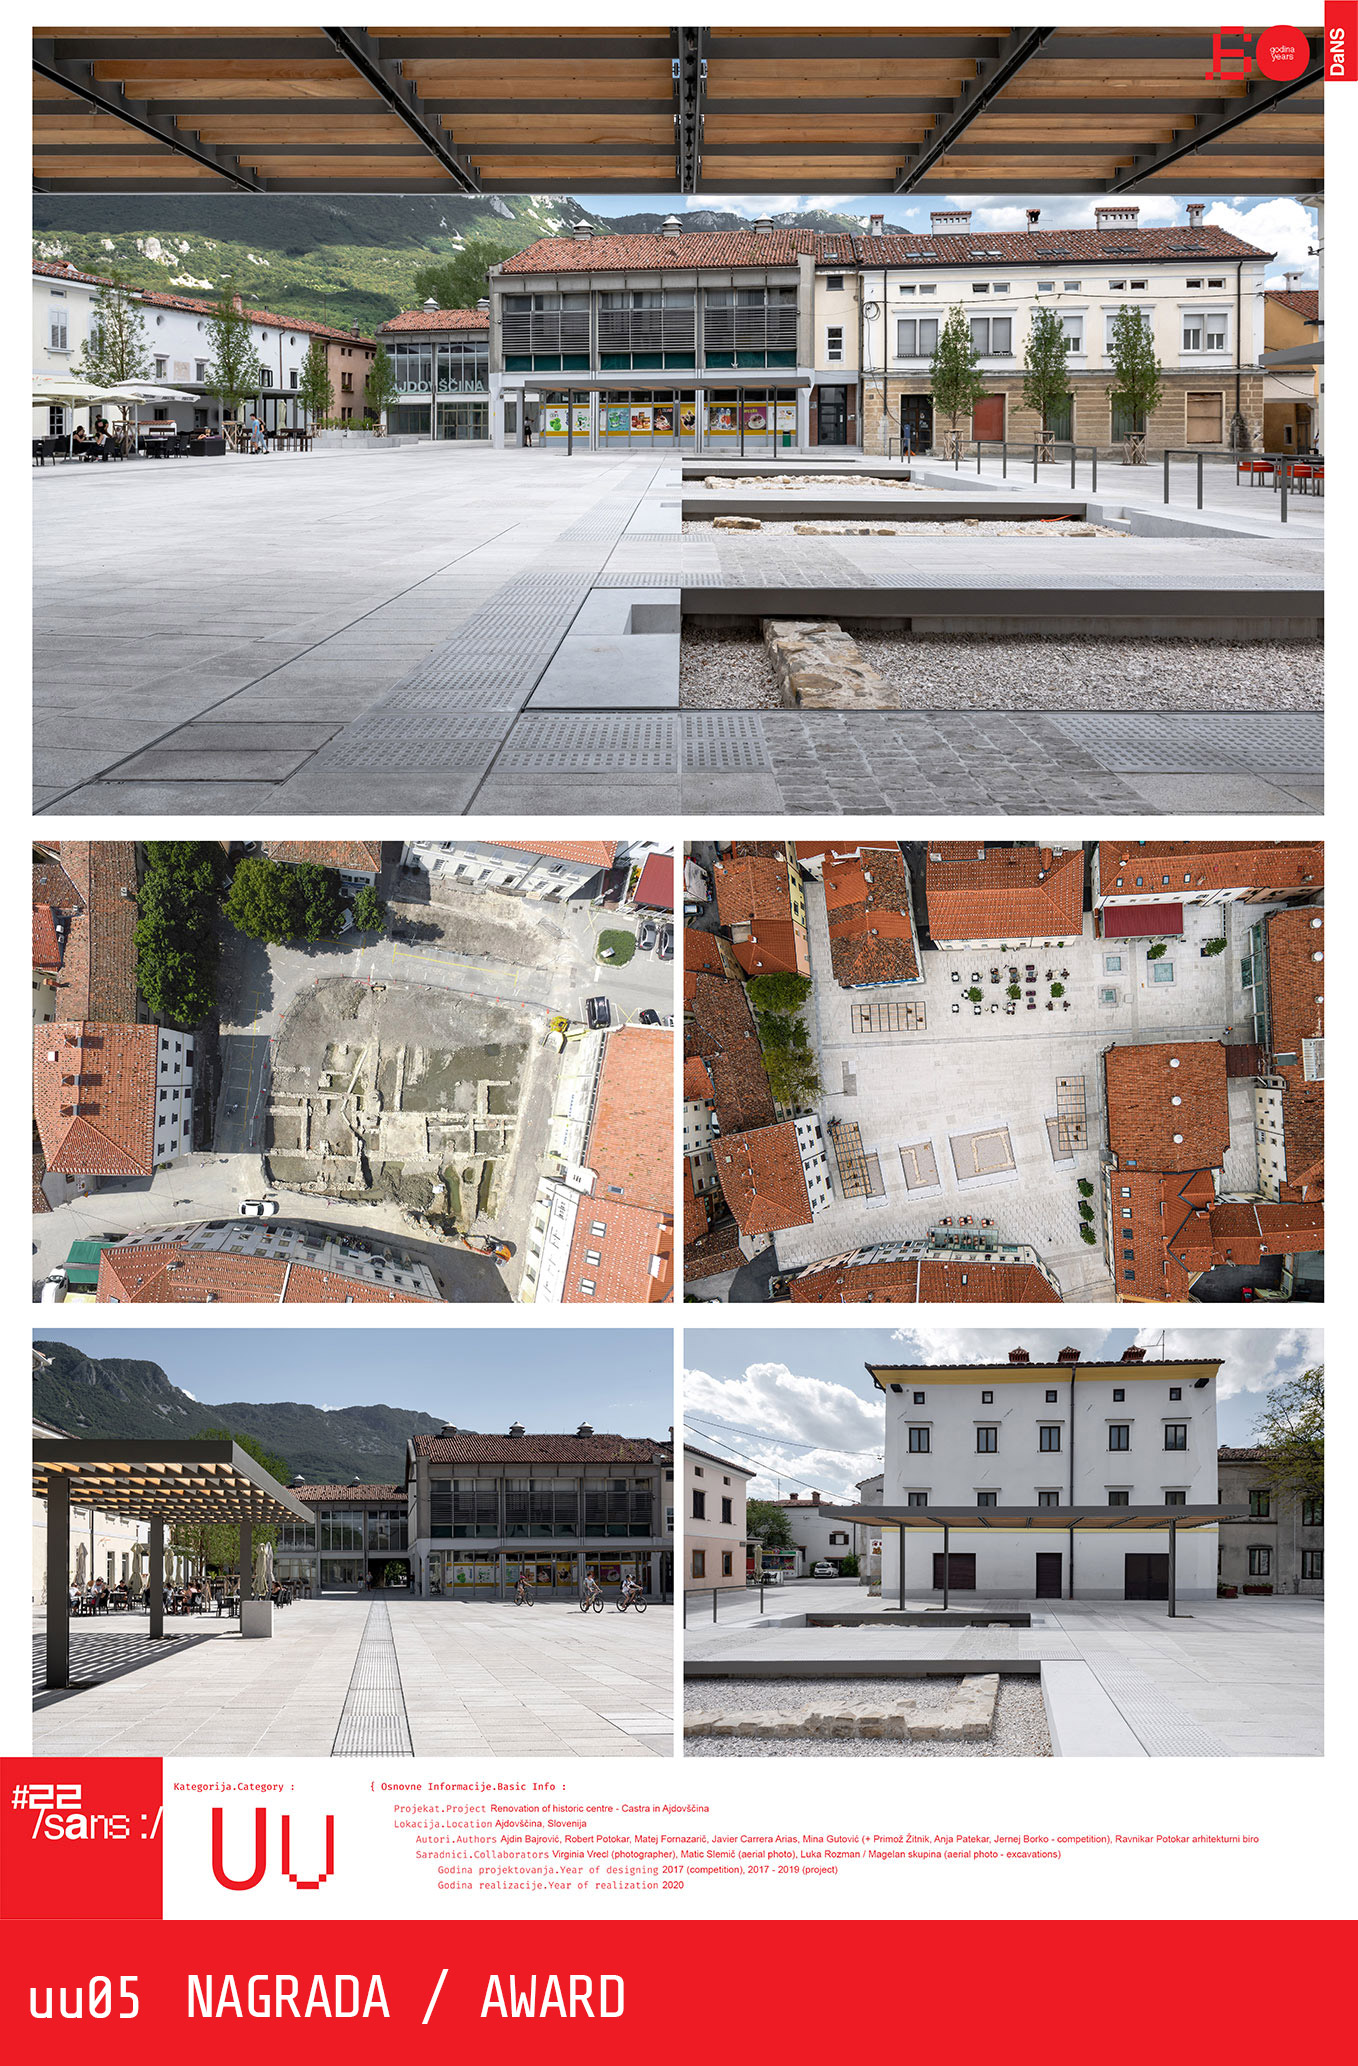 "<p class=""naslov-br"">uu05</p>Renovacija istorijskog centra – Kastra u Ajdovšćini // Renovation of the historic centre - Castrain Ajdovščina"